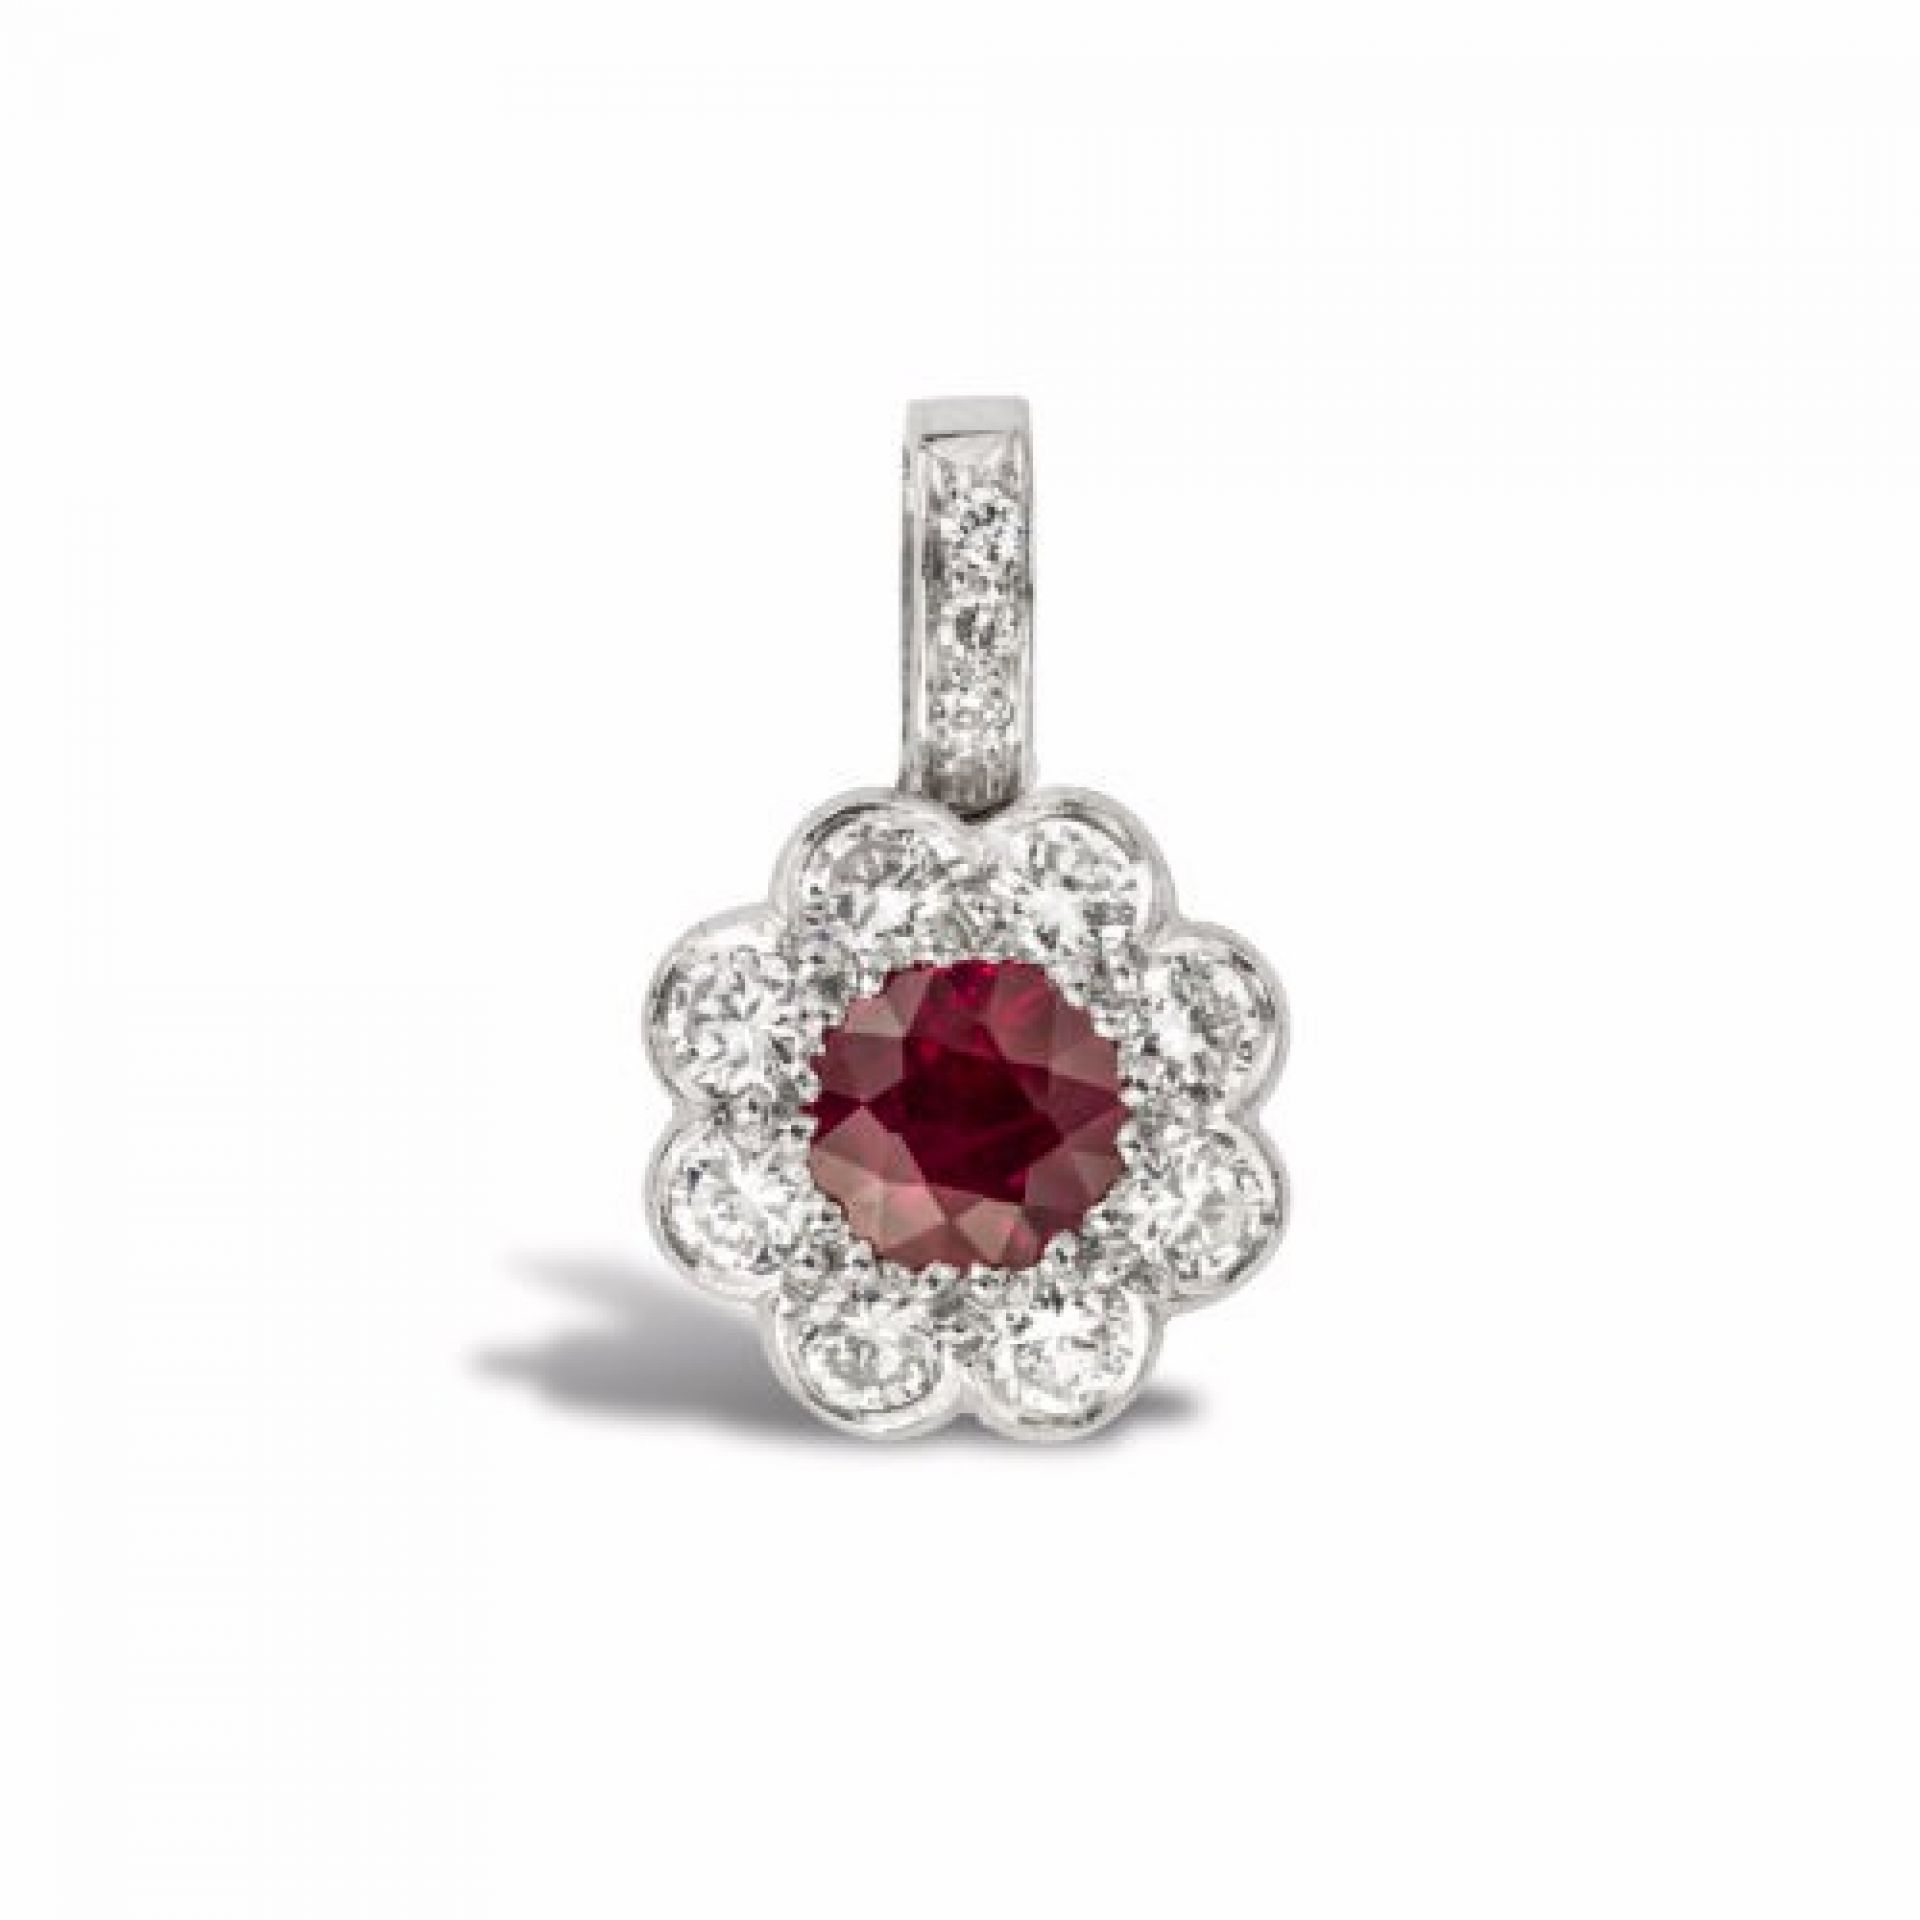 A ruby and diamond cluster pendant